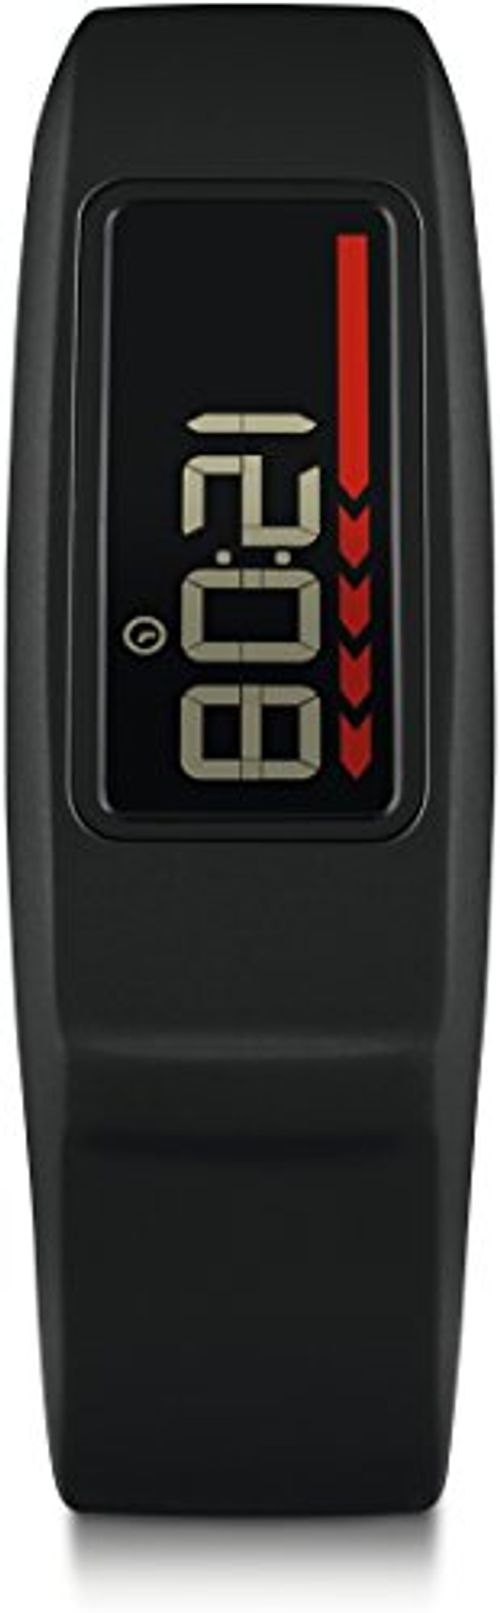 photo Wallpaper of Garmin-Garmin Vívofit 2 HRM (con Banda De Frecuencia Cardiáca)  -Negro